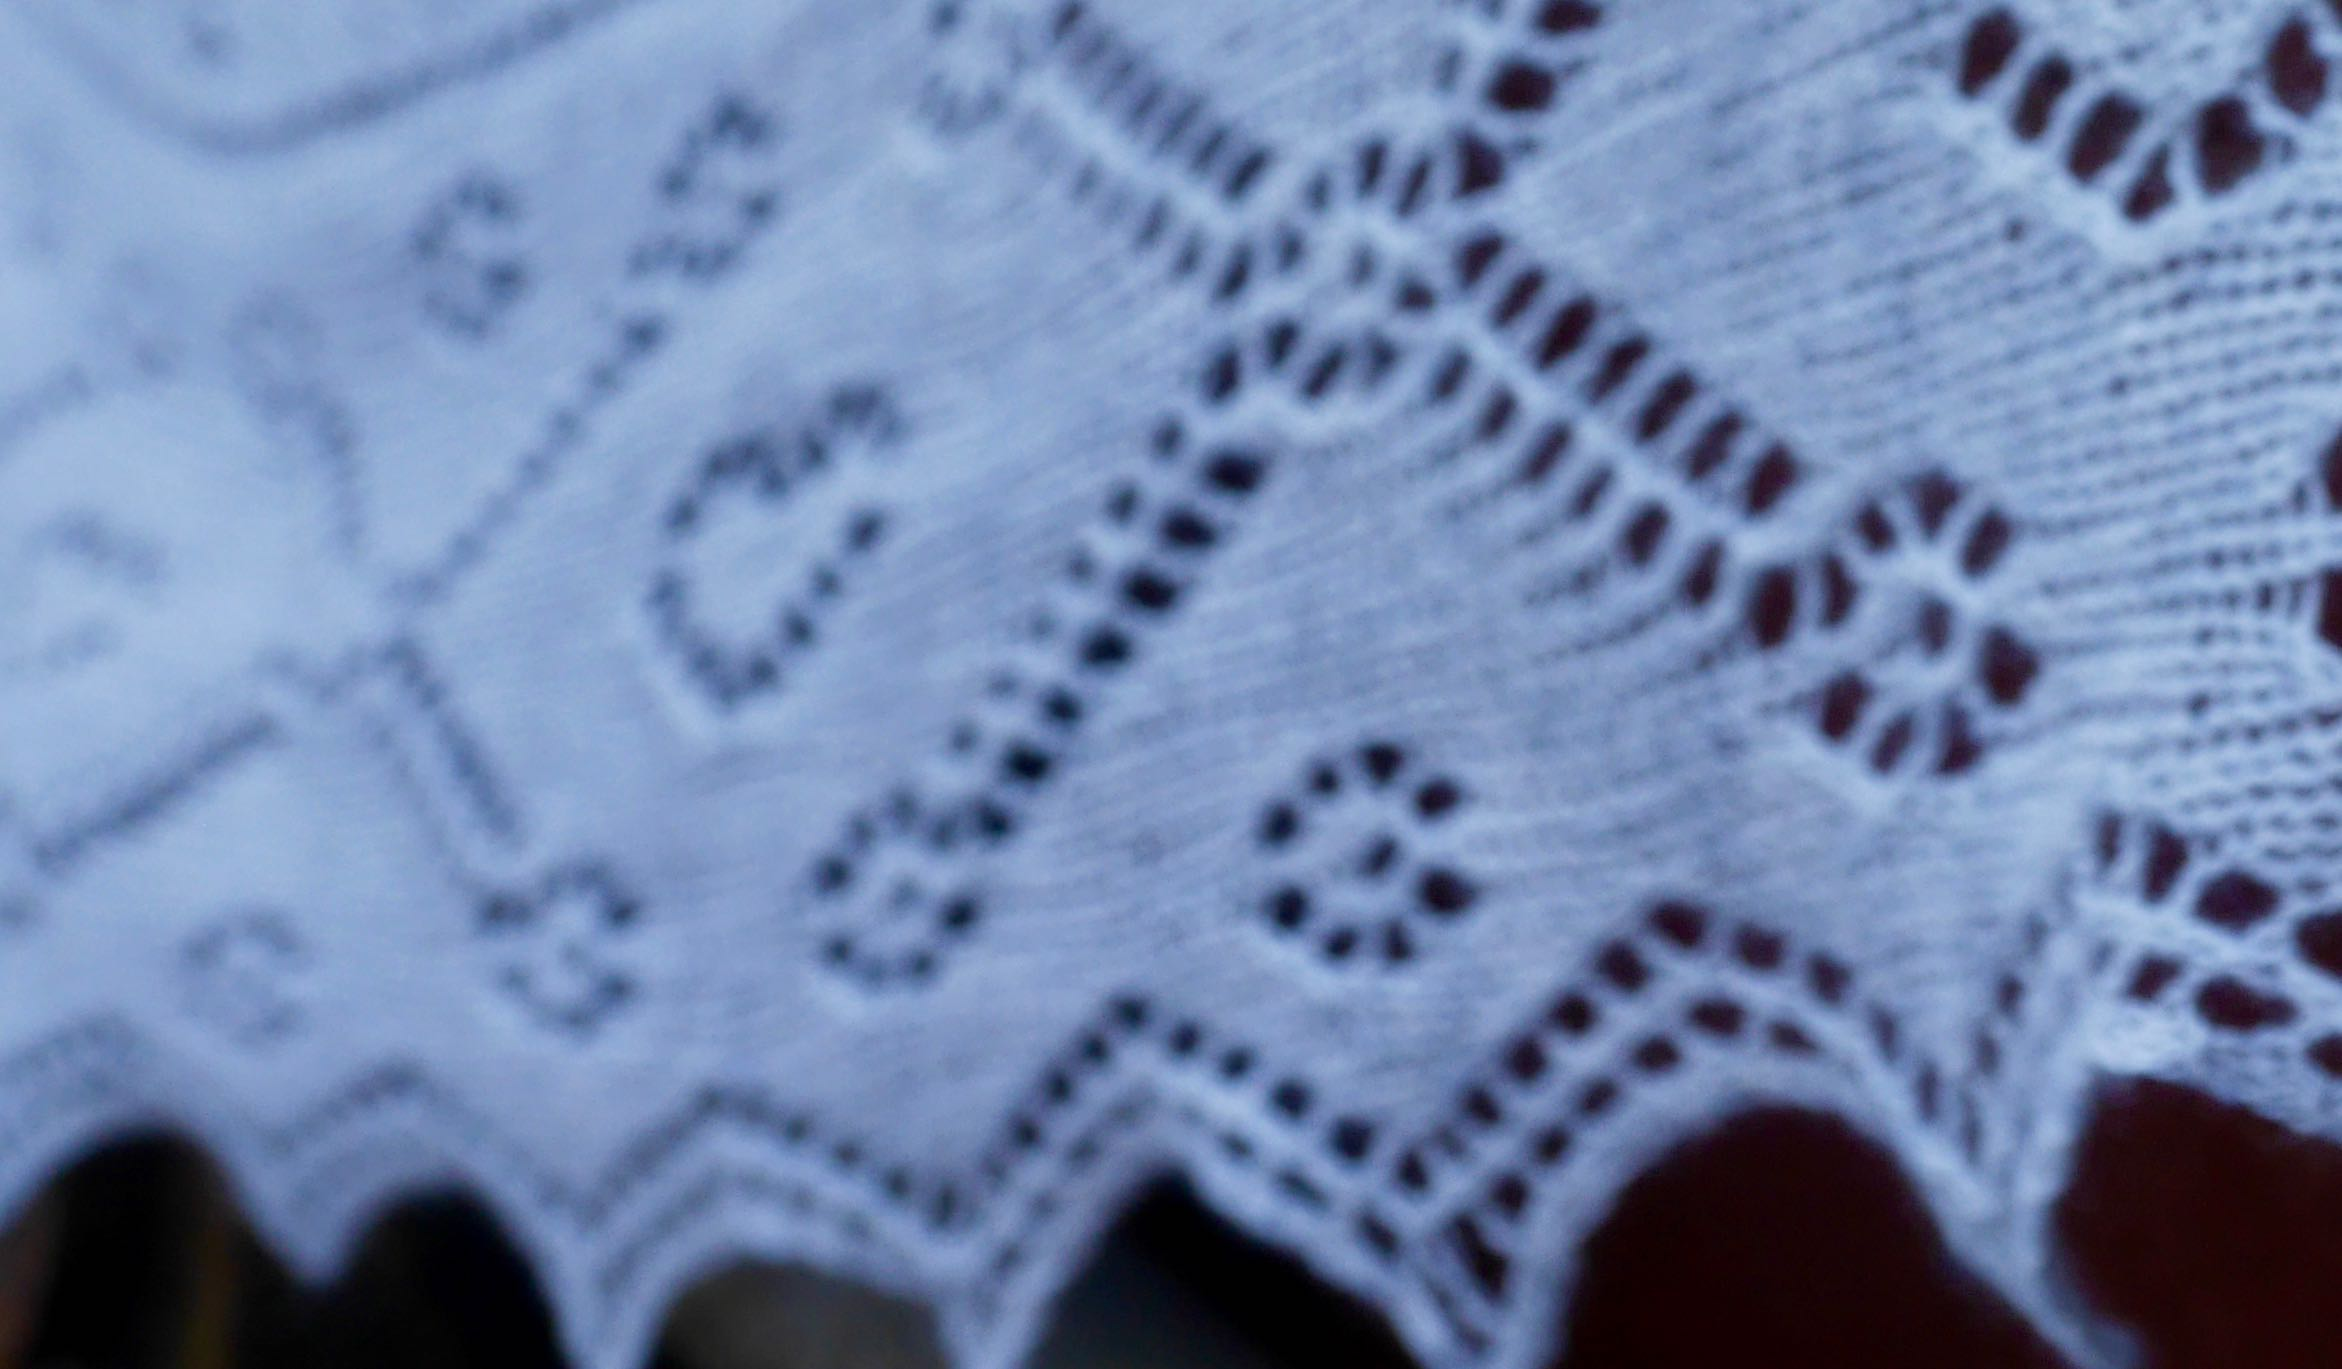 Tico lace edging detail